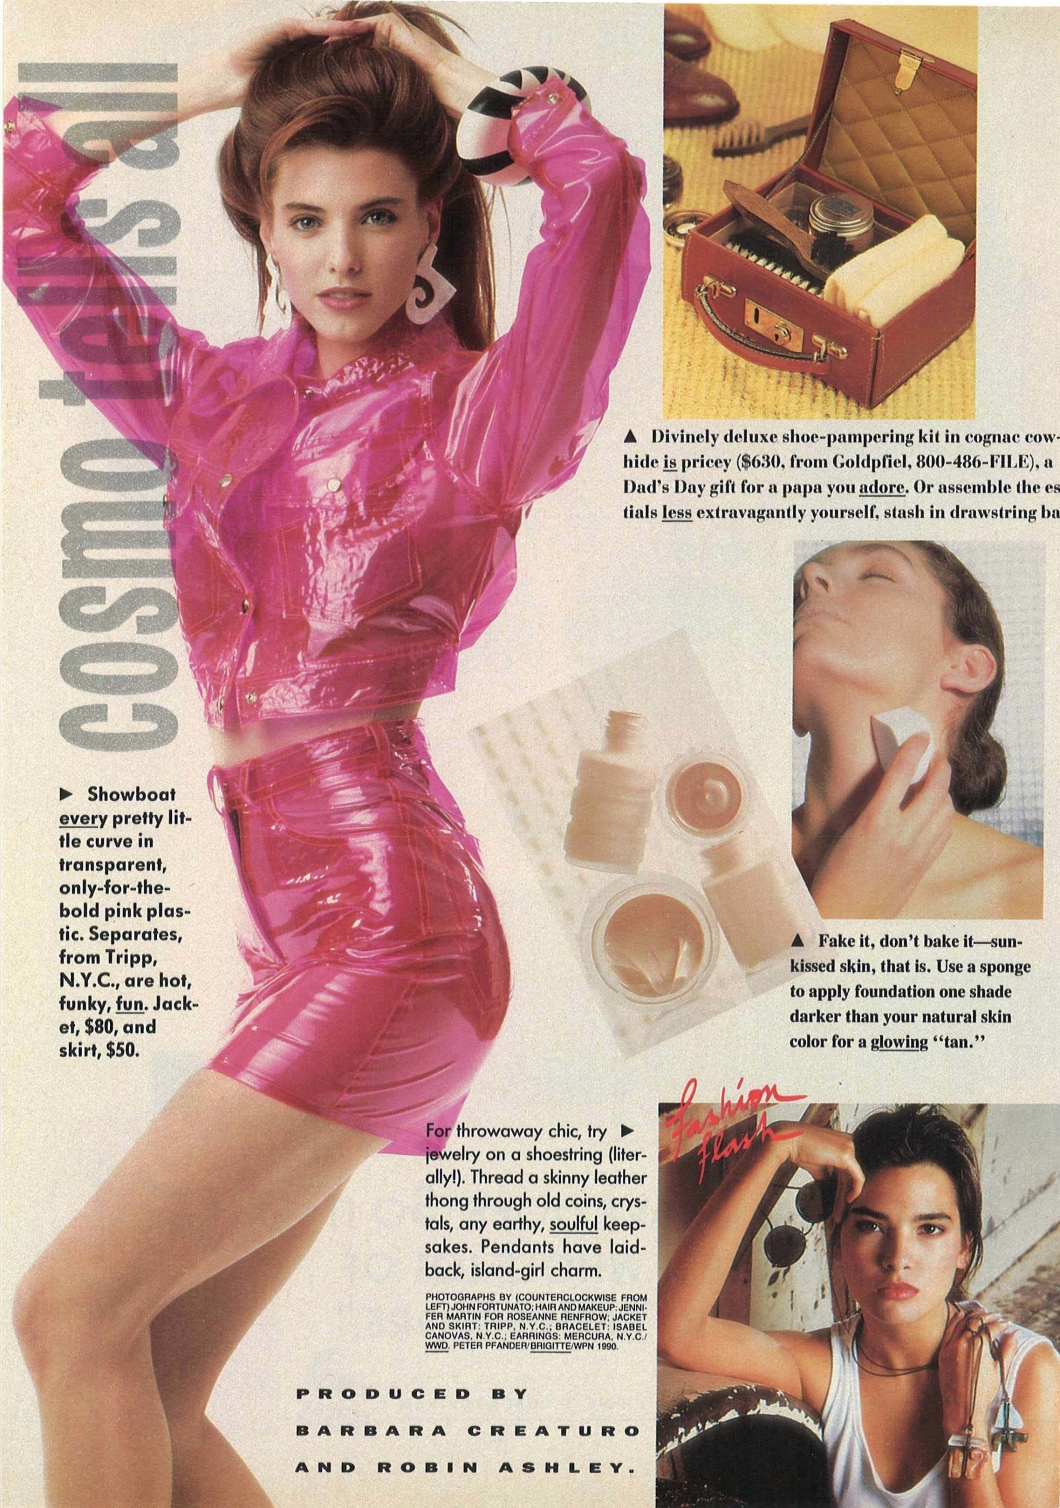 cosmo june 1990 fashion layout